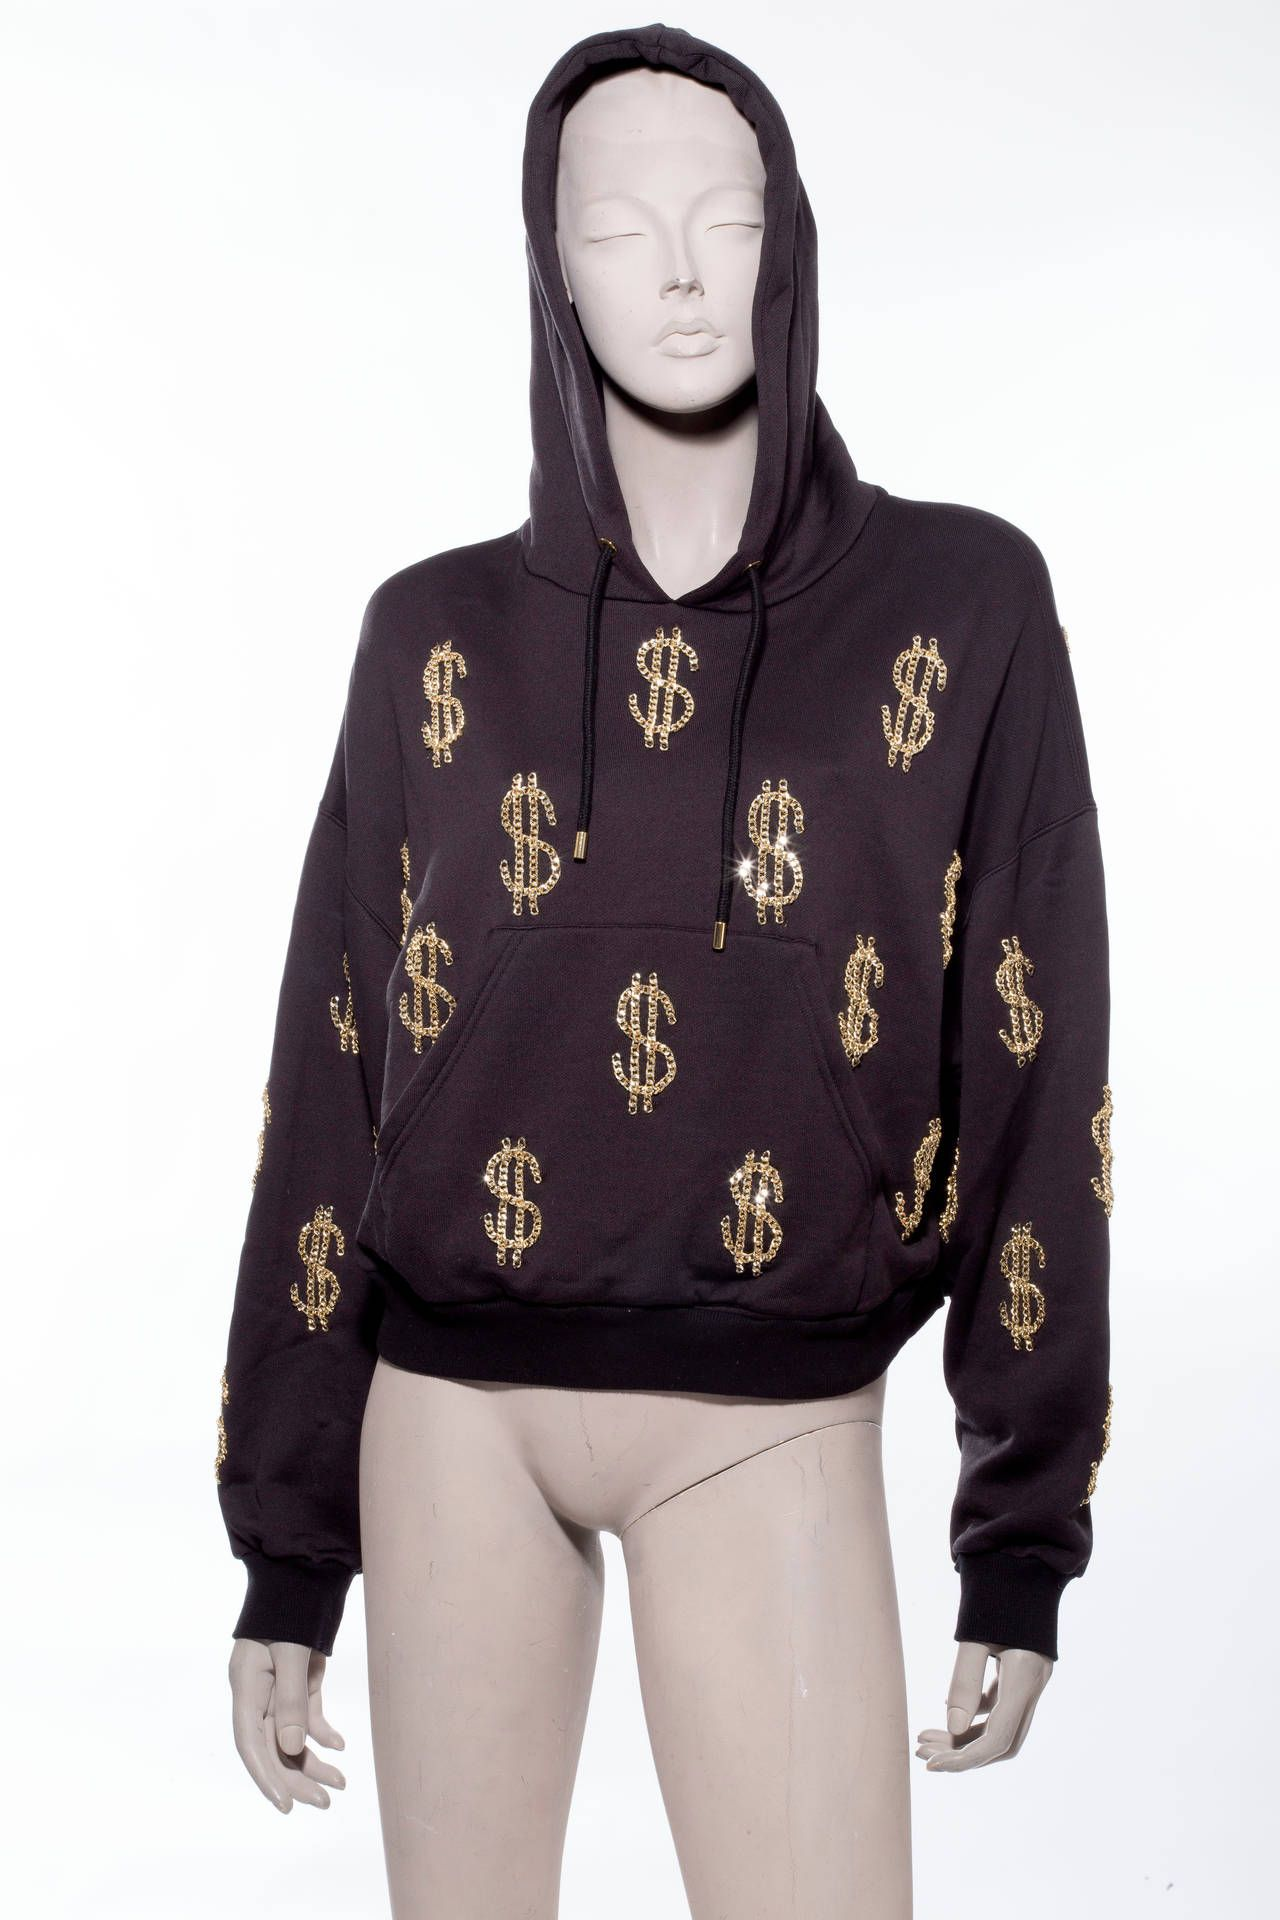 61eaa170d8a Moschino Couture Hoodie With ChainLink Dollar Sign Appliques in